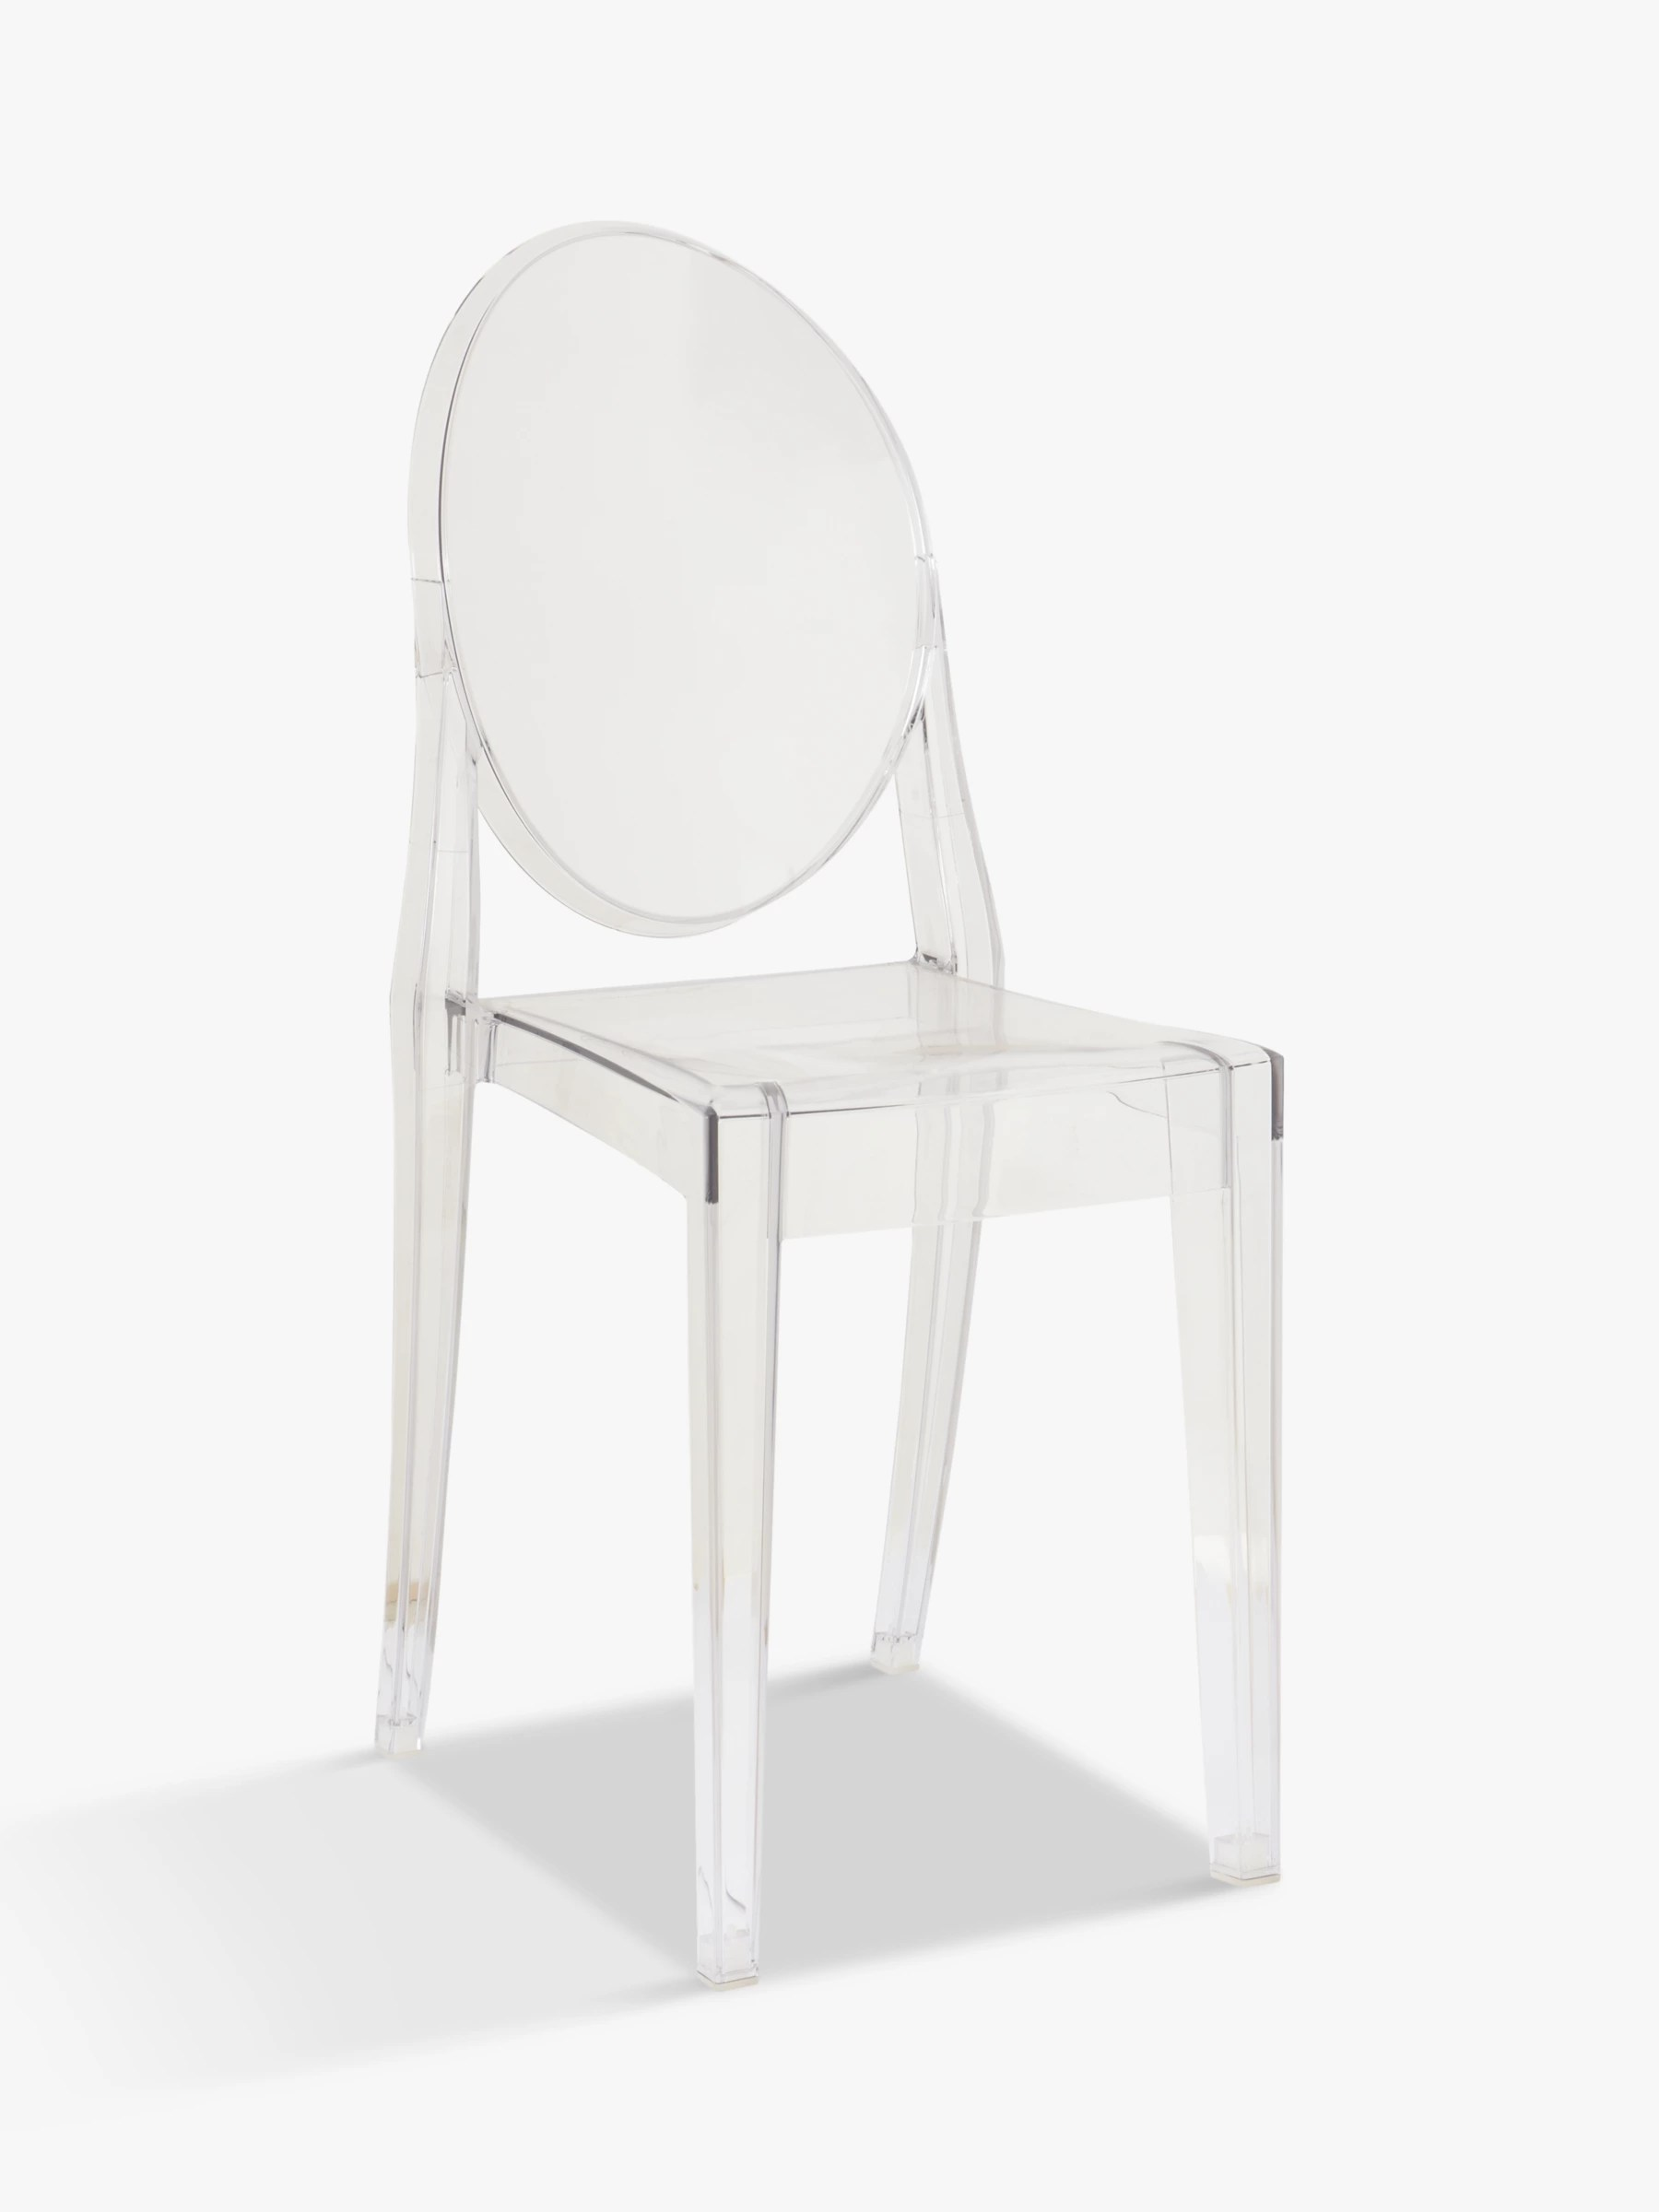 victoria ghost chair jrc accessories philippe starck for kartell at john lewis